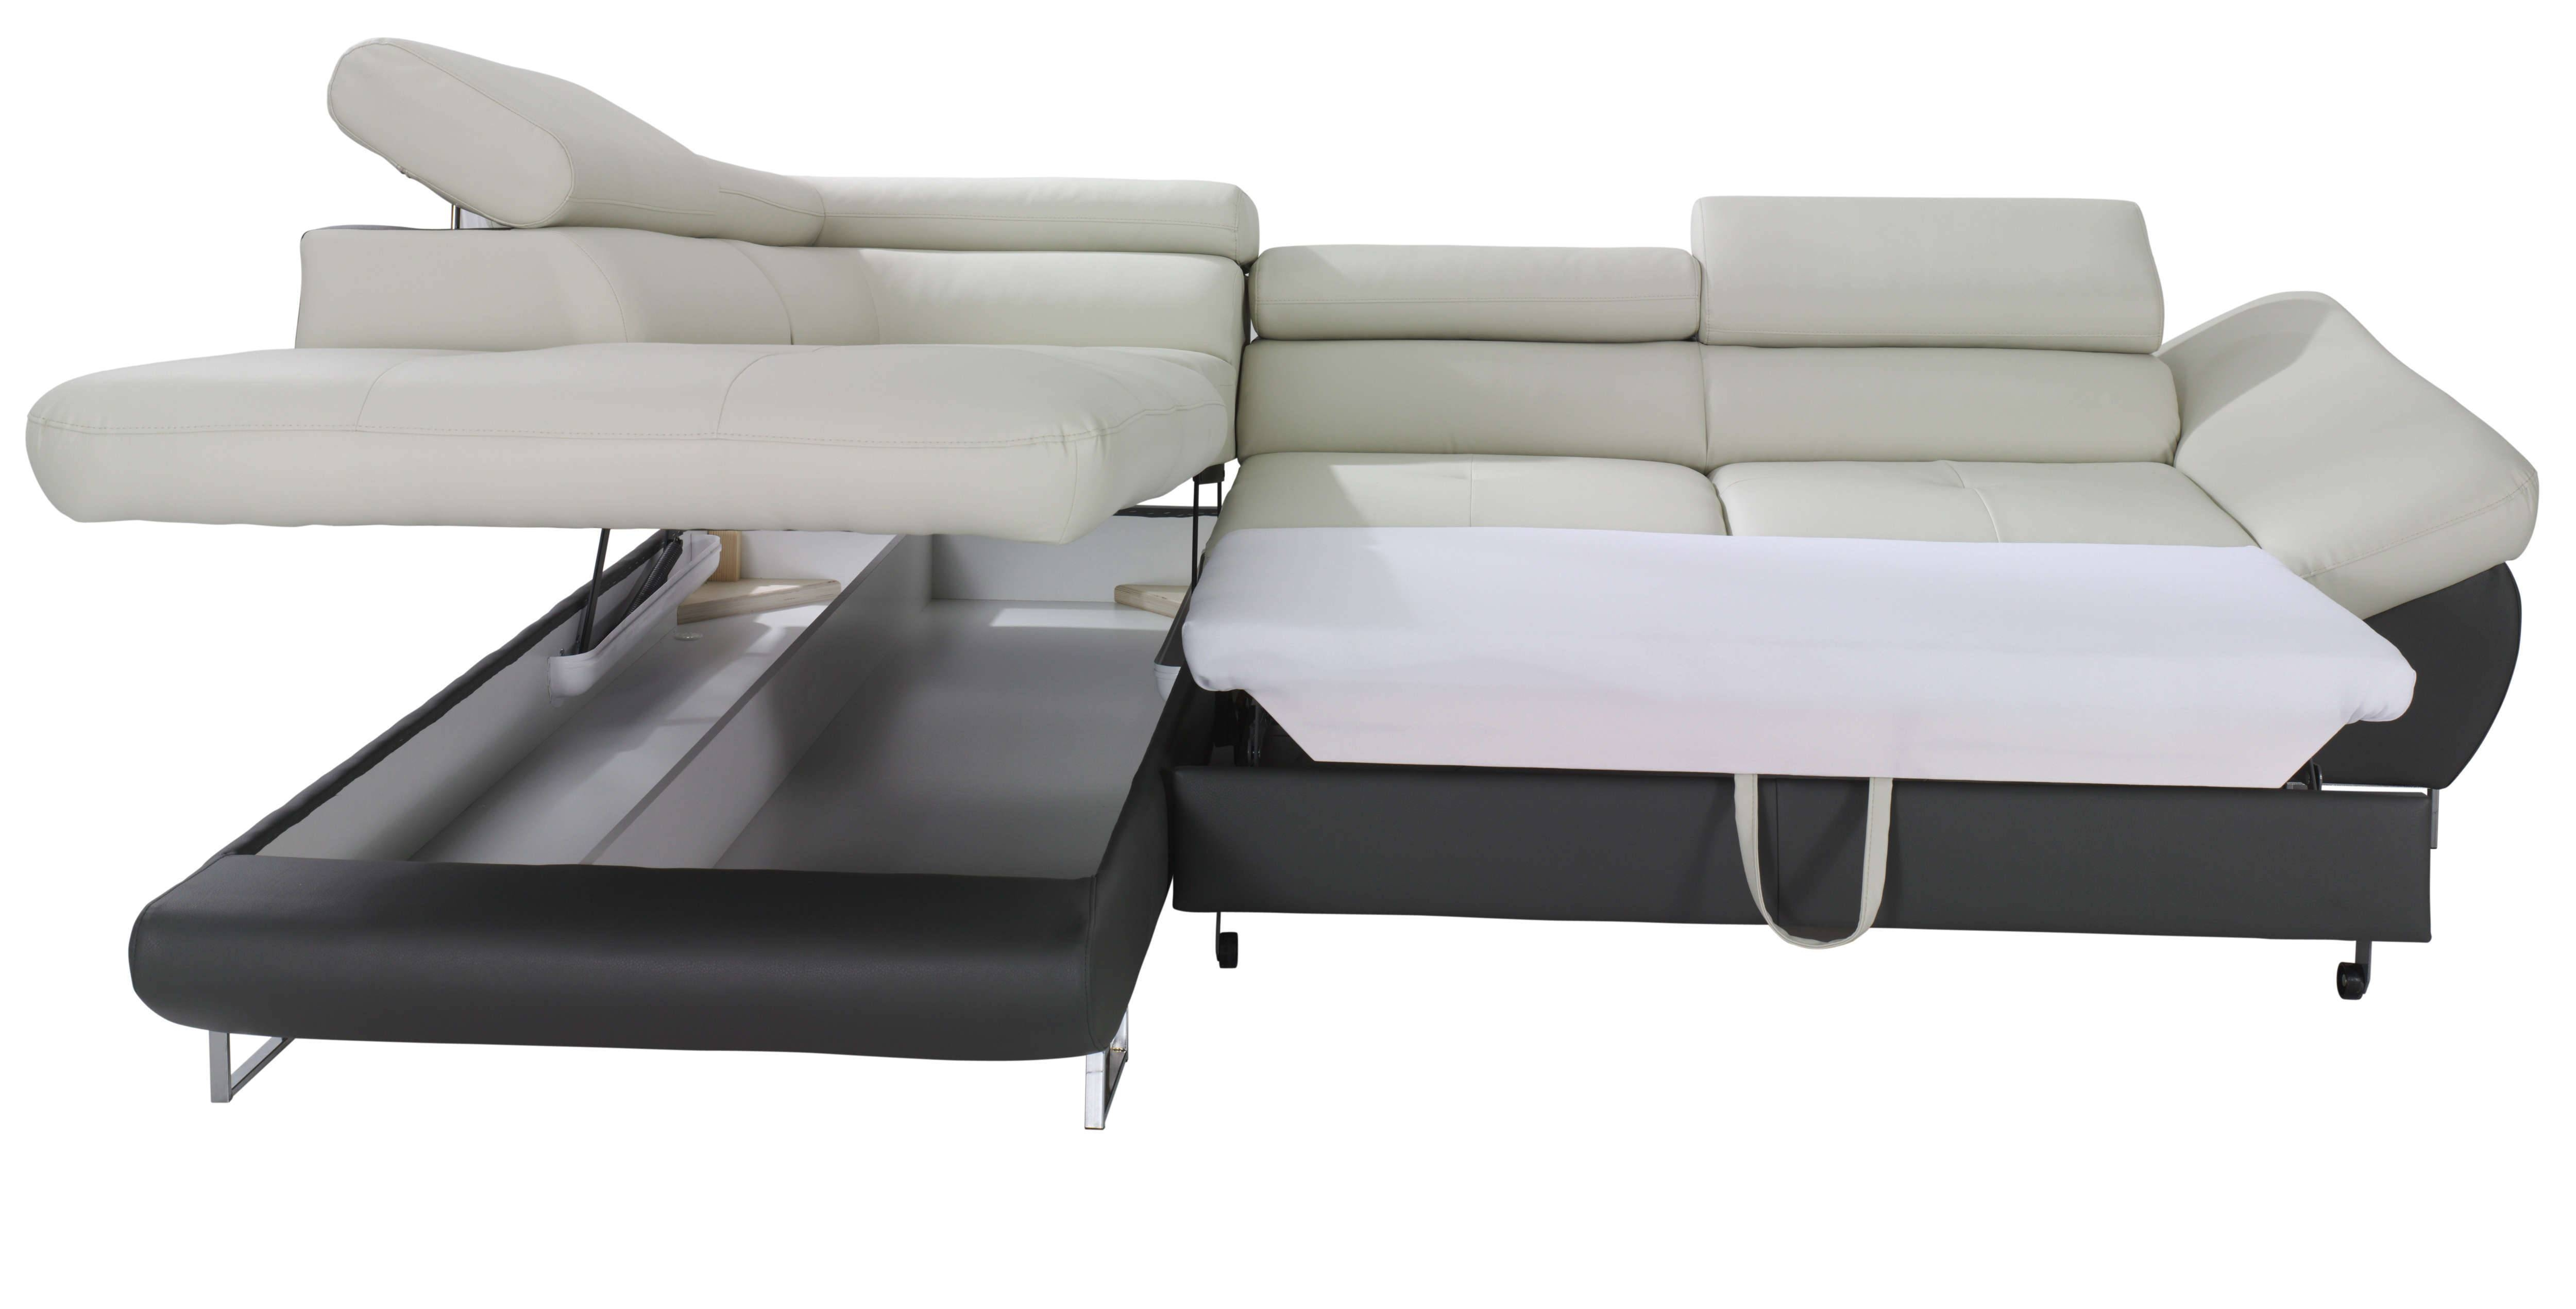 Fabio Sectional Sofa Sleeper With Storage | Creative Furniture regarding Sectional Sofas With Sleeper And Chaise (Image 12 of 30)